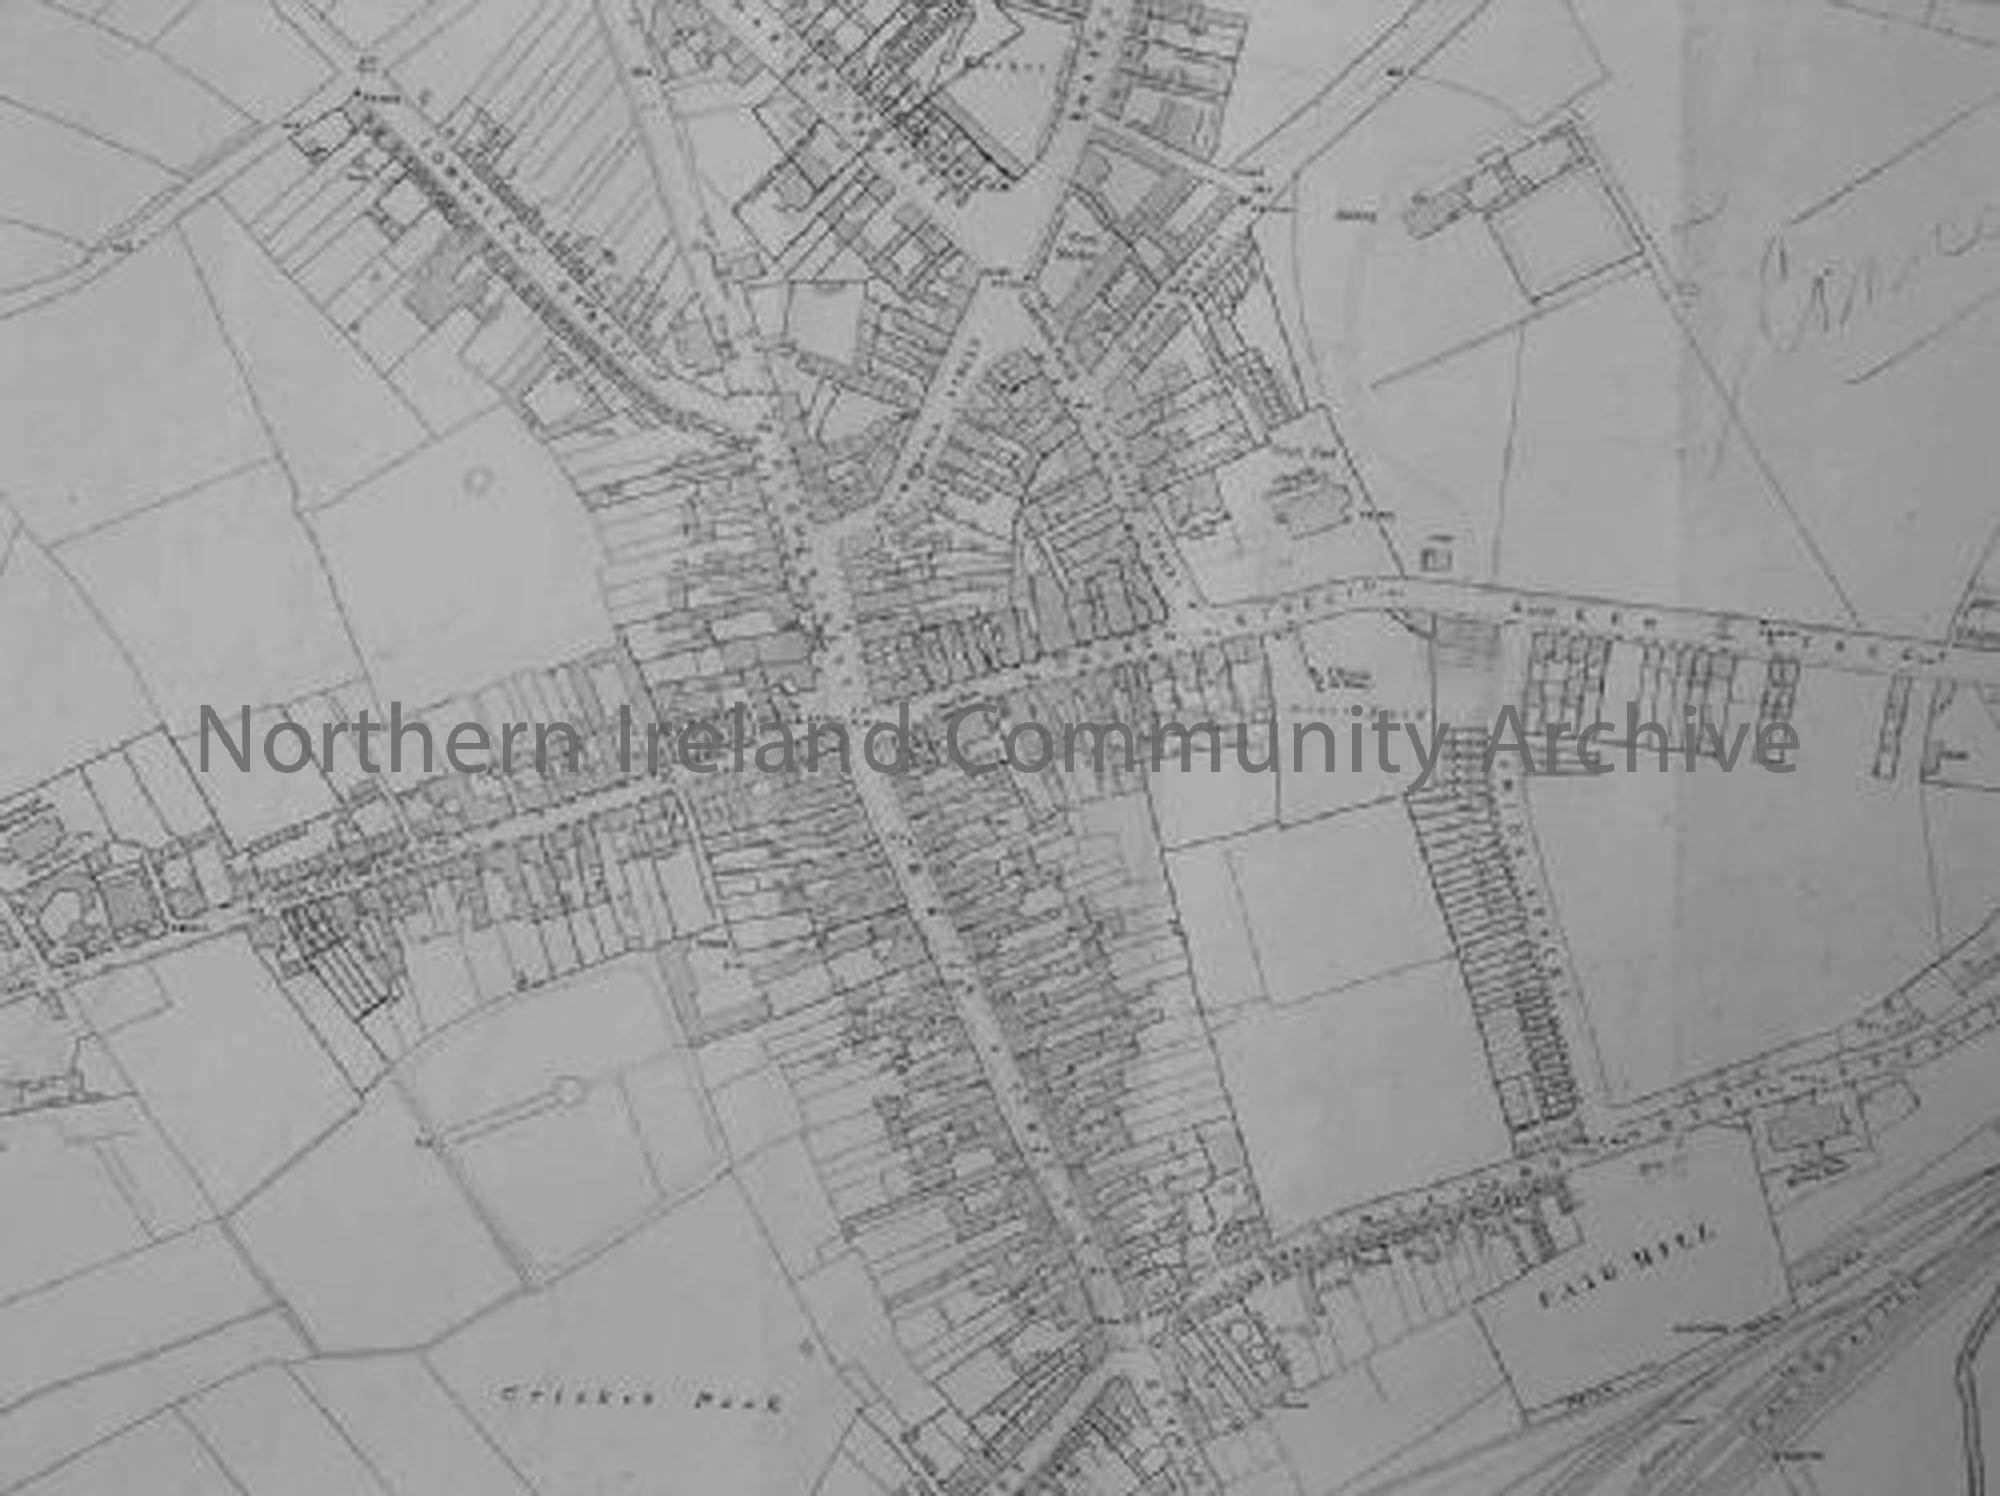 Ordnance Survey map of Ballymoney Town 1895 (6808)